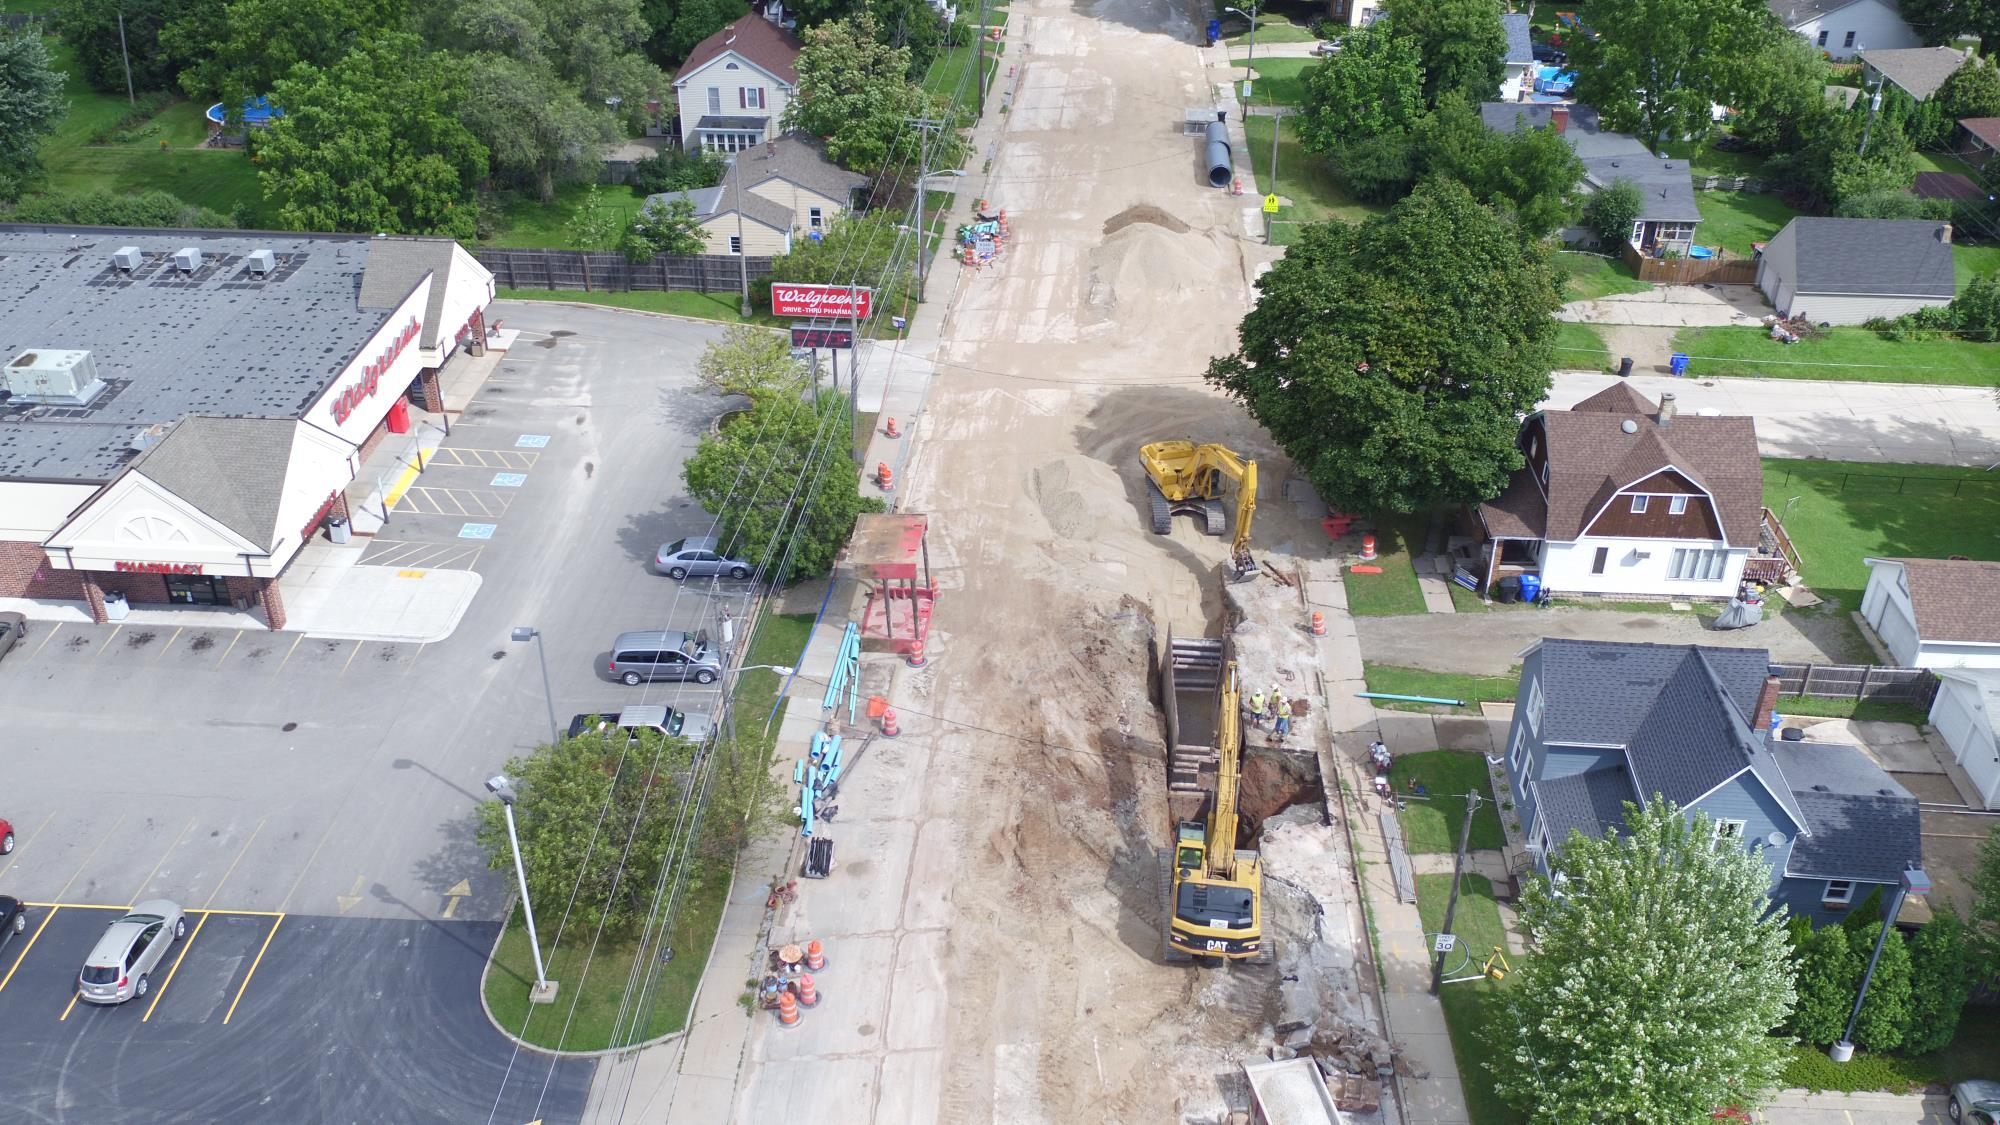 Oneida St. construction closing in on final phase for 2017